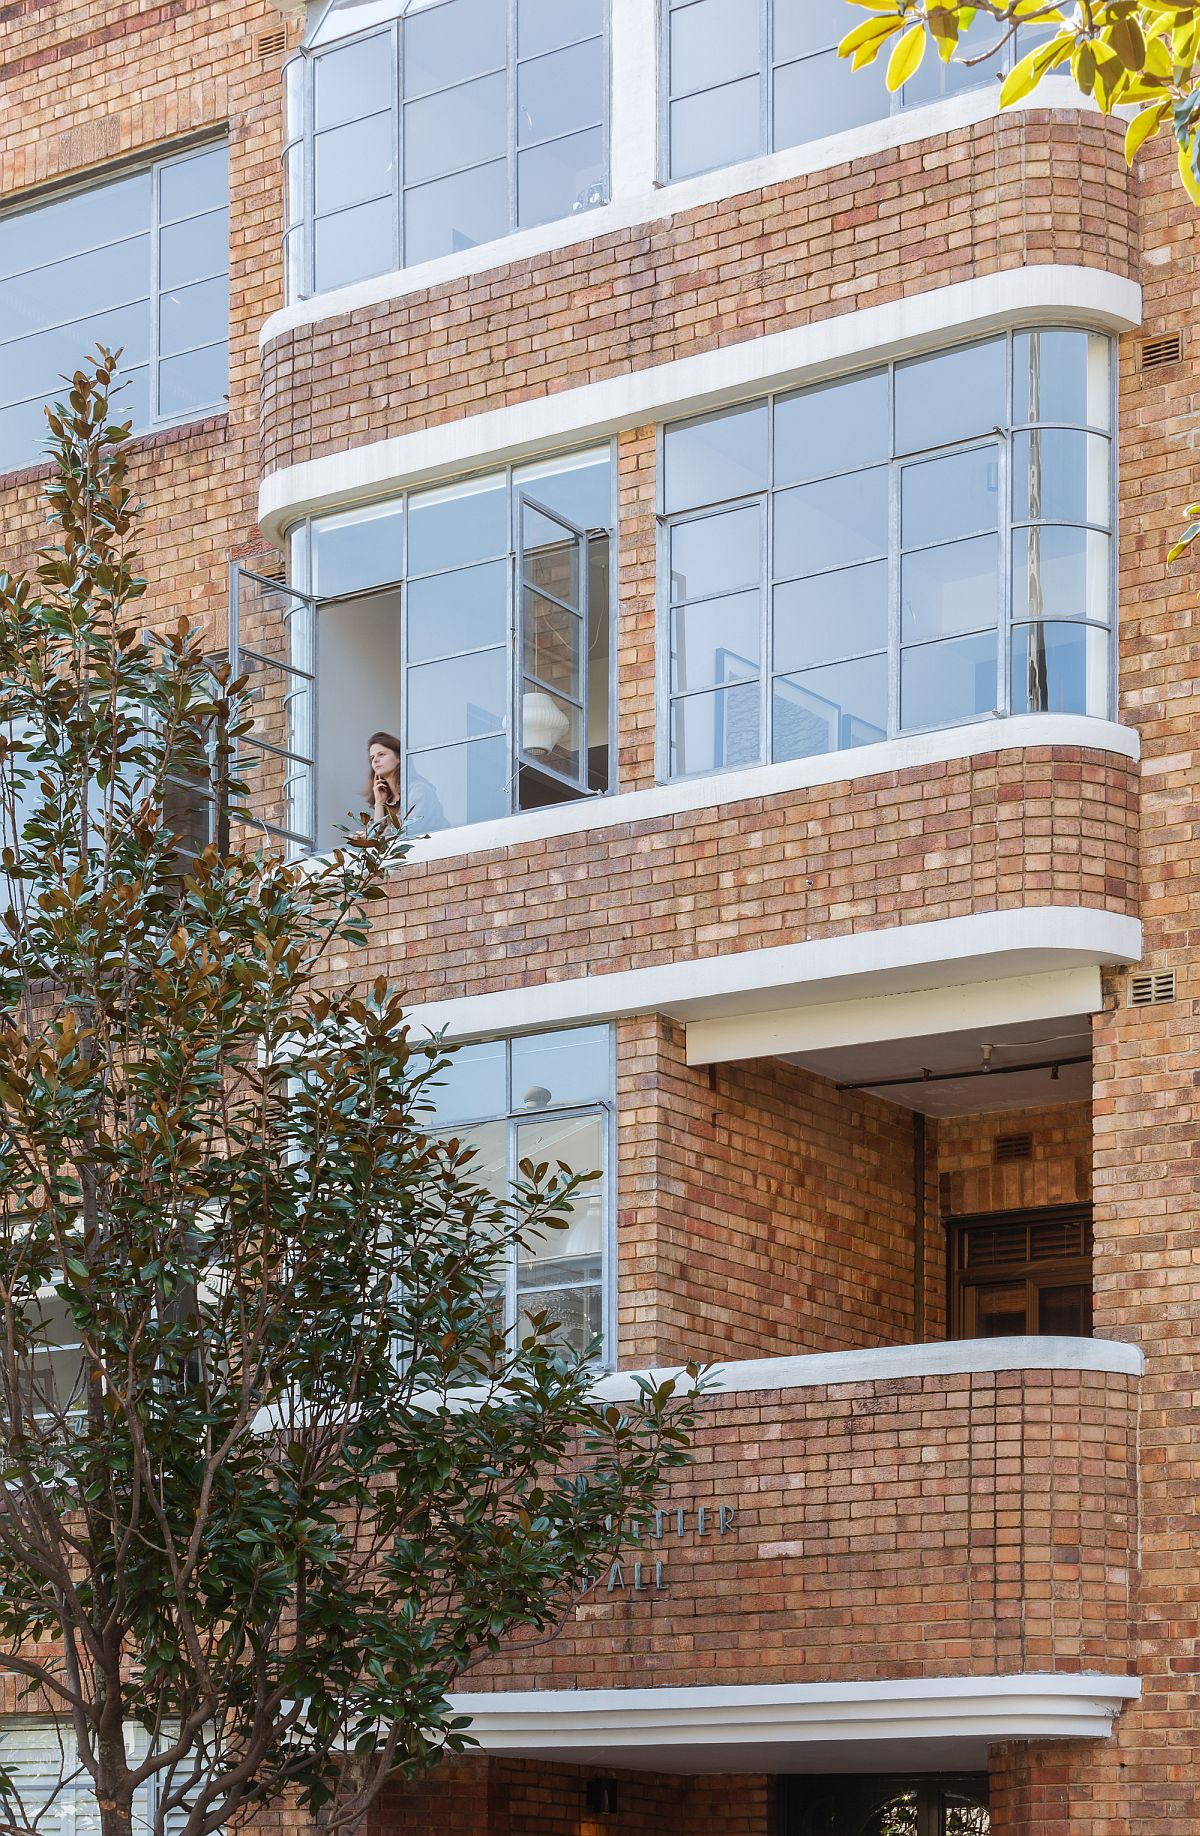 Brick exterior of the building that holds the small Sydney apartment